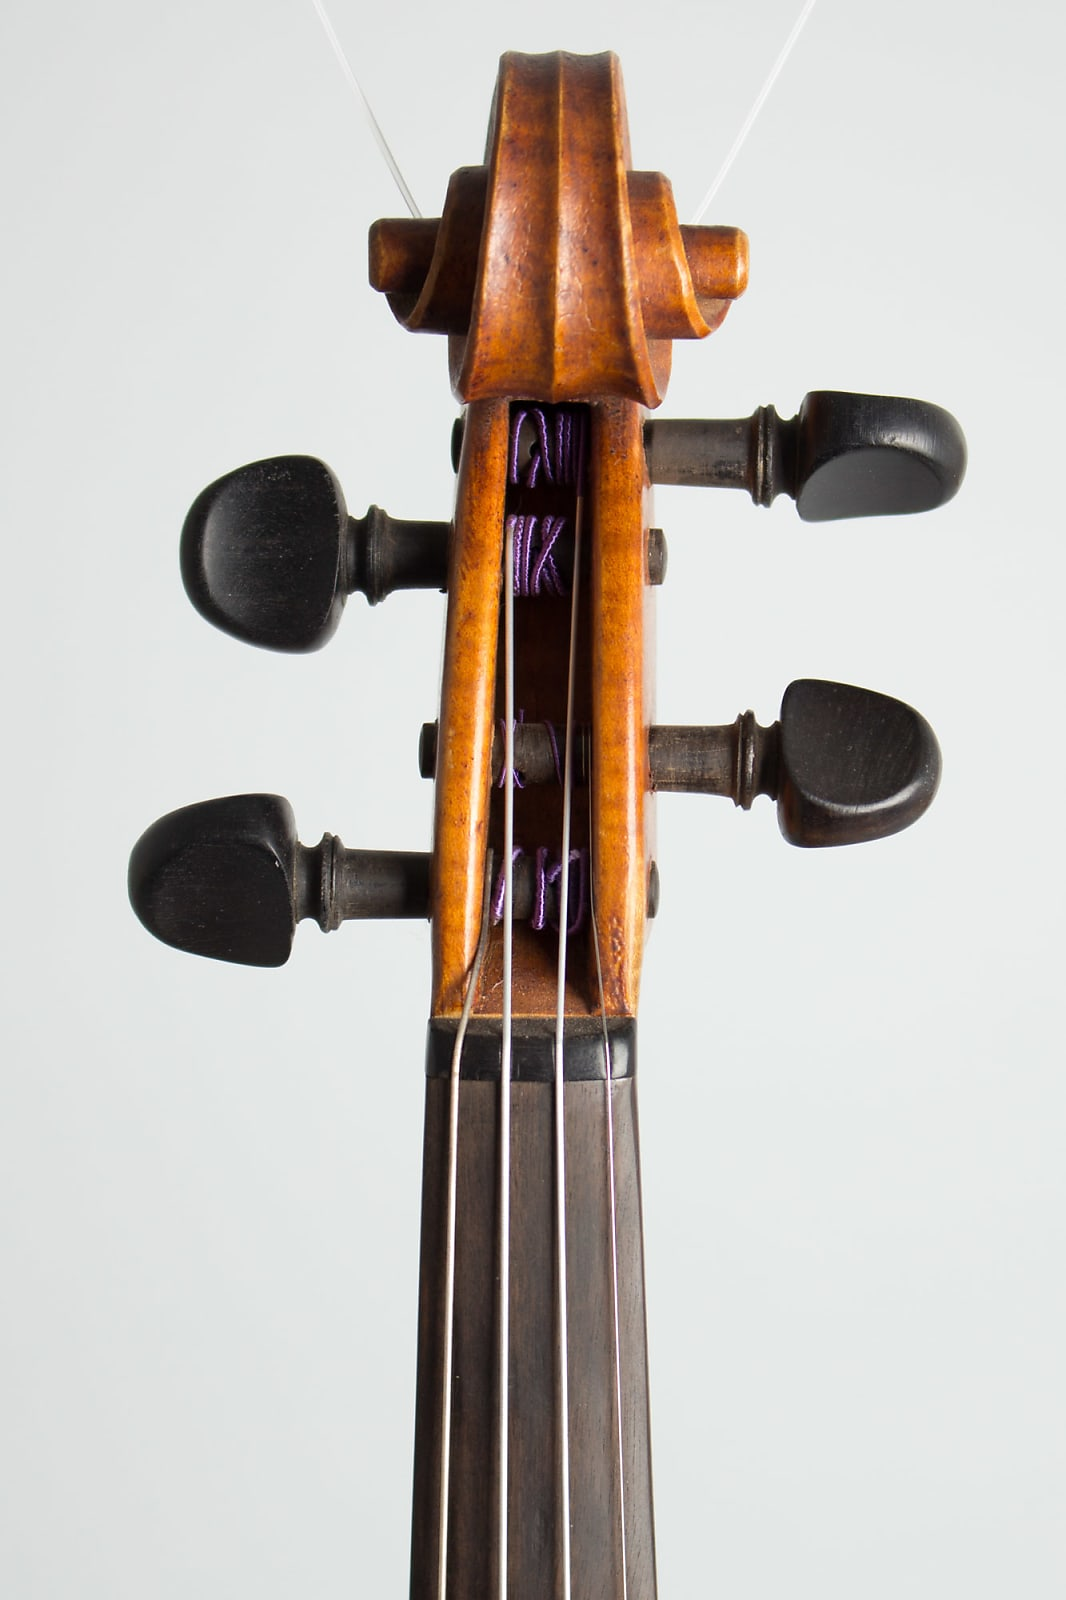 Frantisek Zivec Violin 1959 Amber Varnish Finish, curly maple and spruce, brown canvas hard shell cs